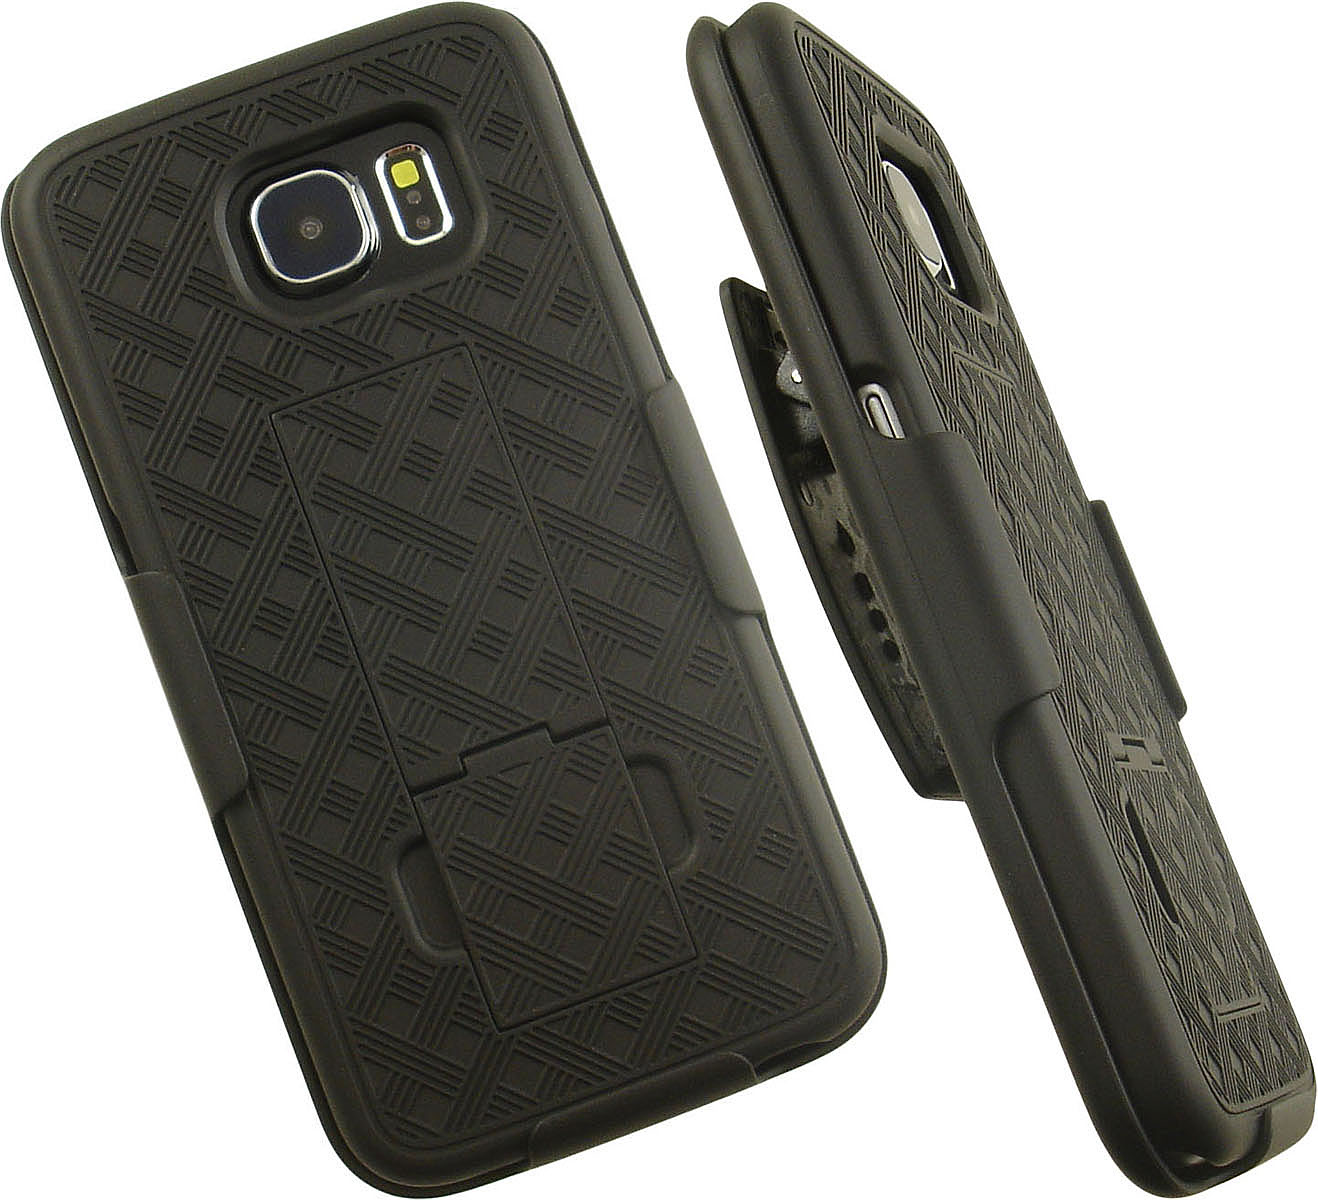 NAKEDCELLPHONE'S BLACK KICKSTAND TEXTURED HARD CASE COVER + BELT CLIP HOLSTER STAND FOR SAMSUNG GALAXY S6 PHONE  (SM-G920)